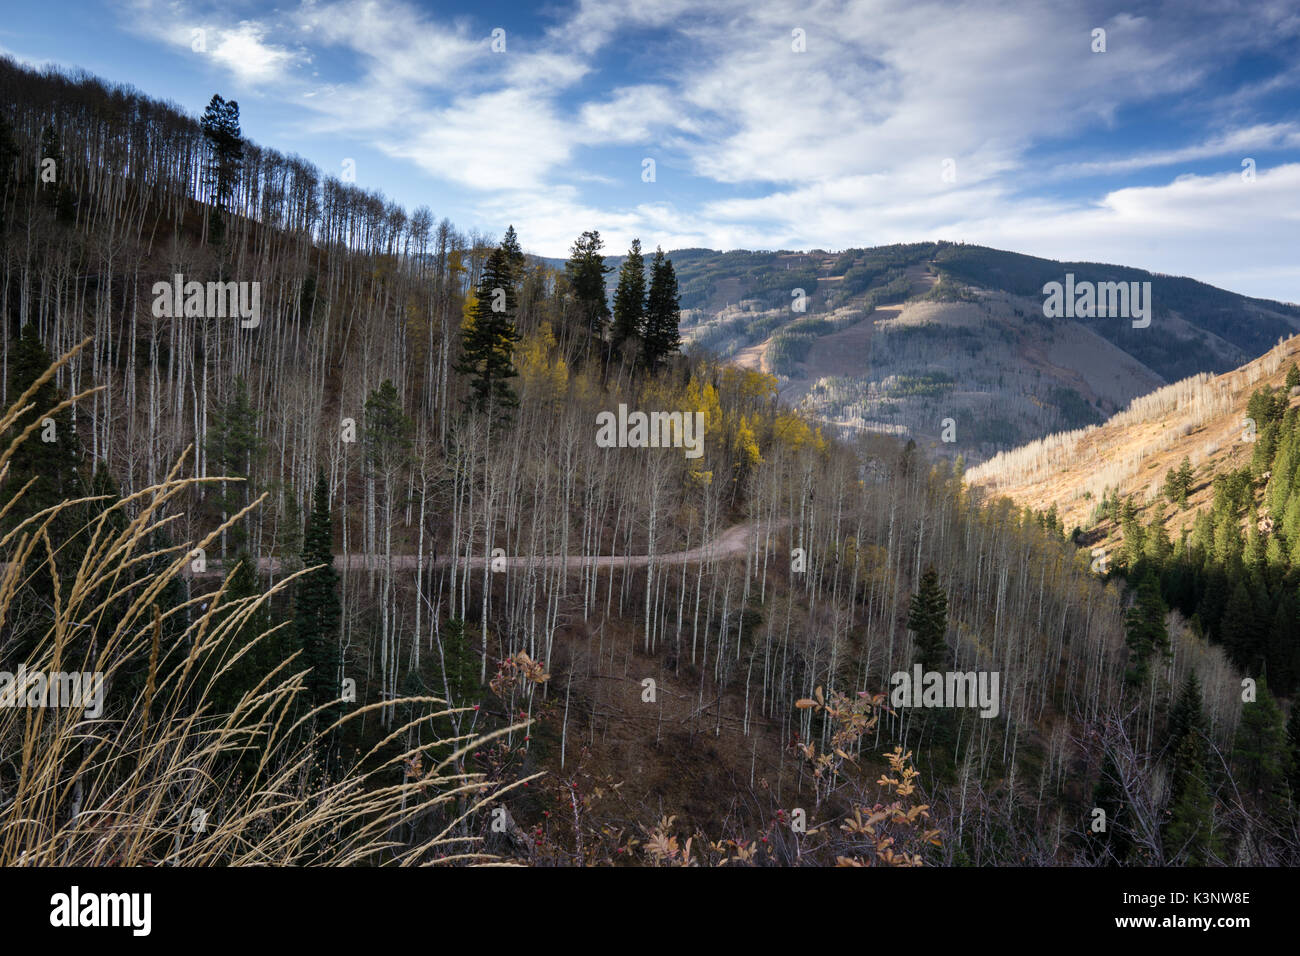 Taken from the road to Piney Lake, outside of Vail, Colorado. - Stock Image